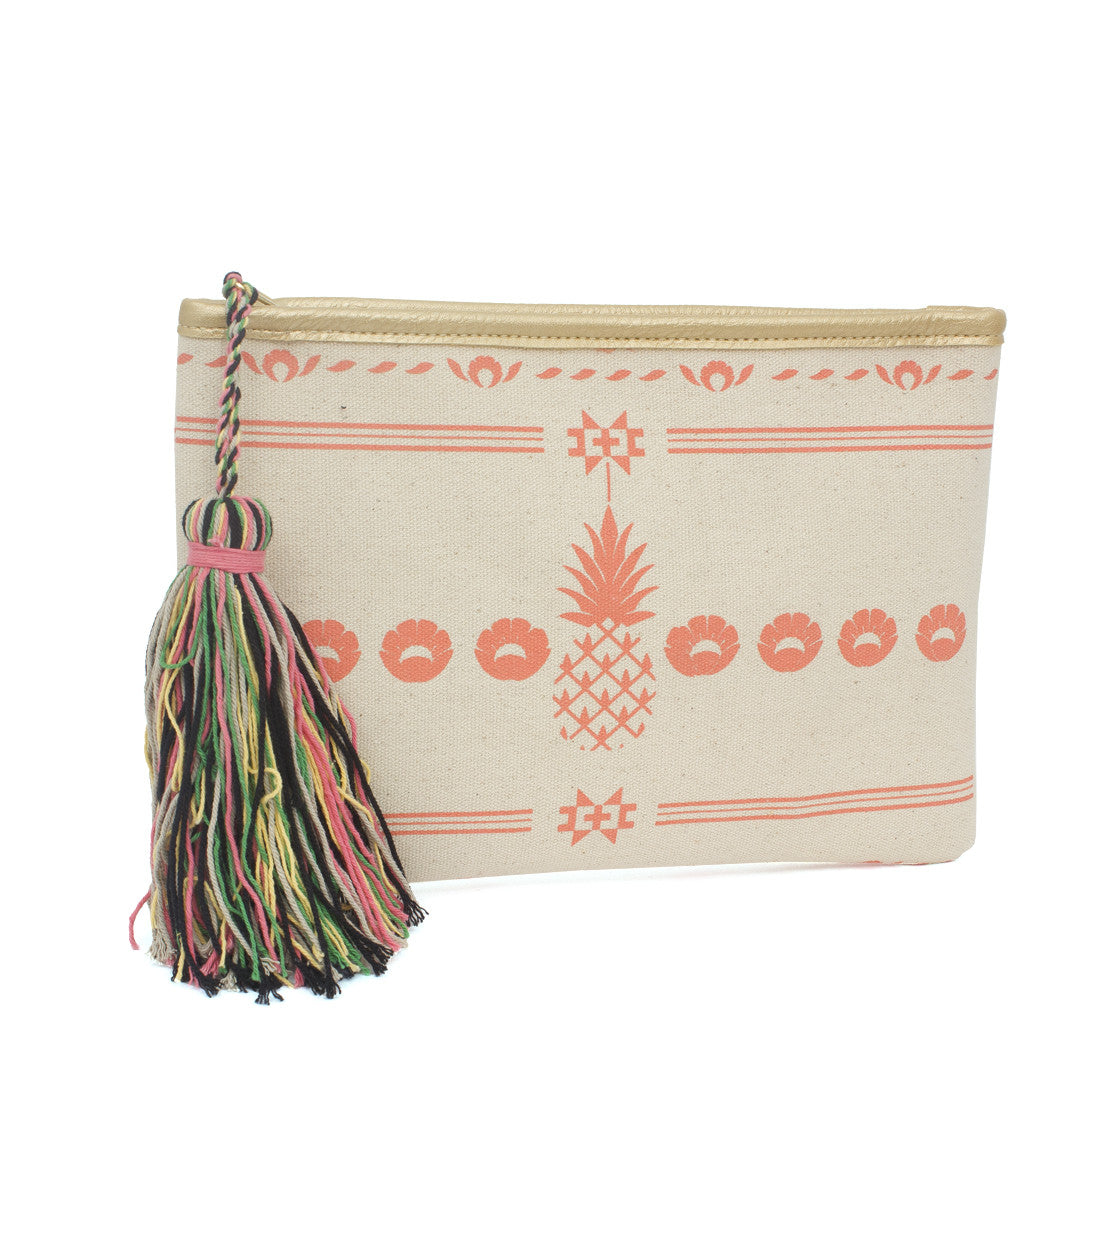 Pineapple Aztec Clutch with Tassel - Just Jamie